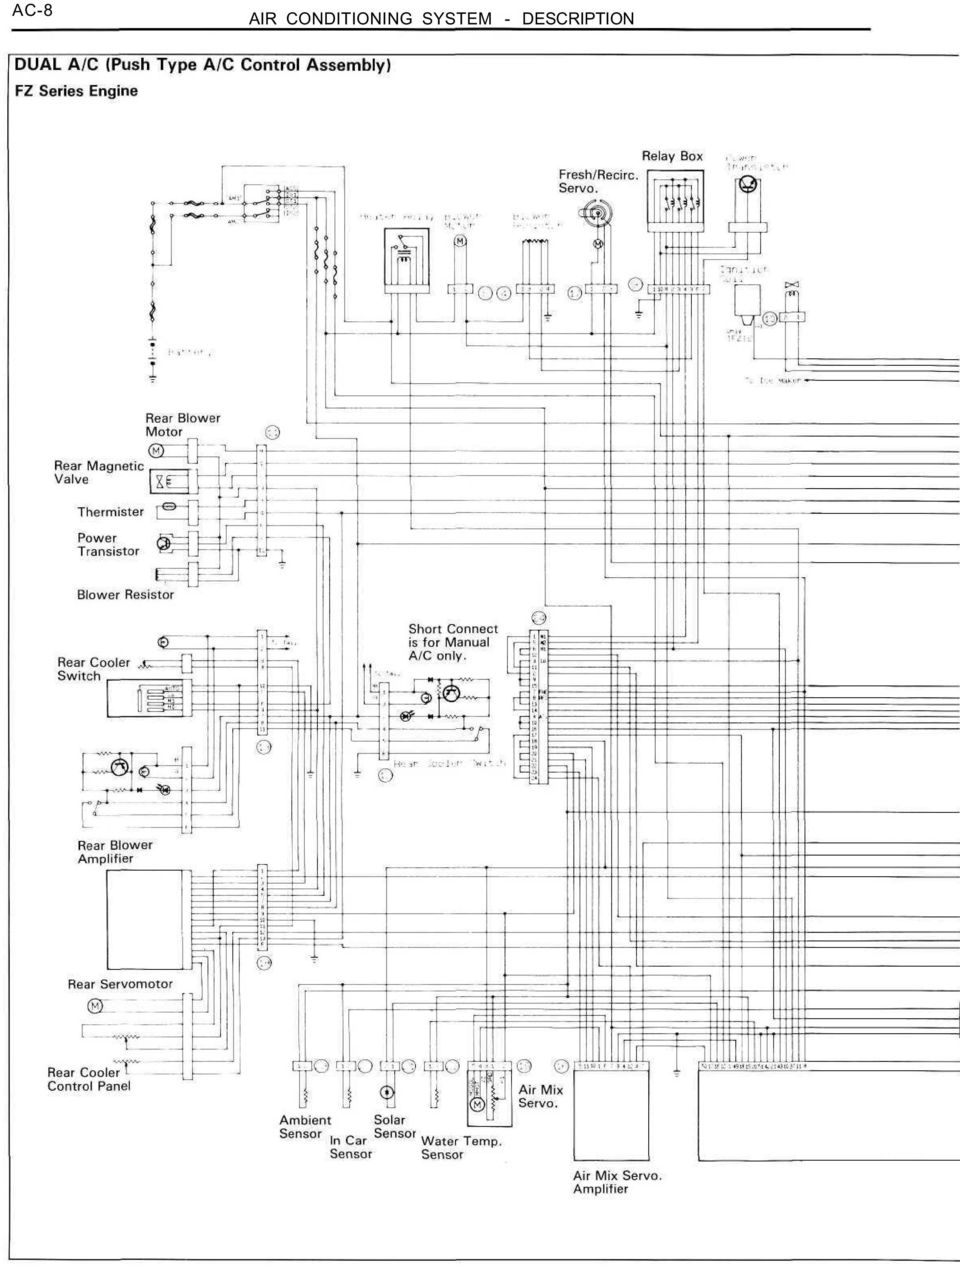 Toyota Sienna Service Manual: Air outlet control servo motor (for rear air conditioning system)